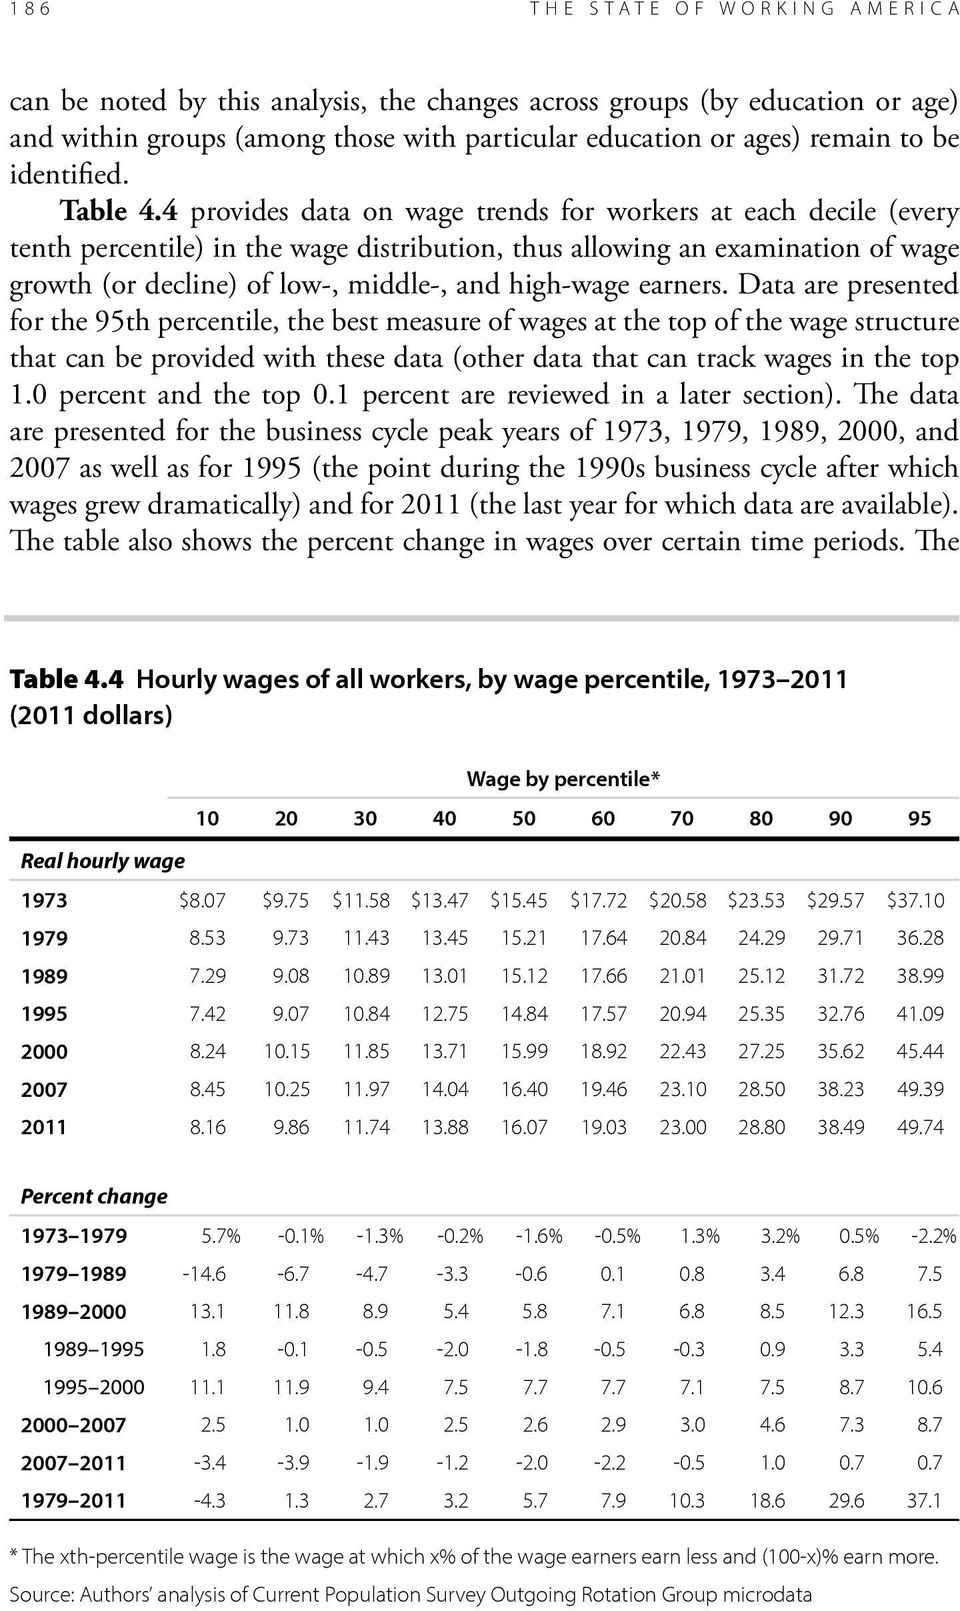 4 provides data on wage trends for workers at each decile (every tenth percentile) in the wage distribution, thus allowing an examination of wage growth (or decline) of low-, middle-, and high-wage